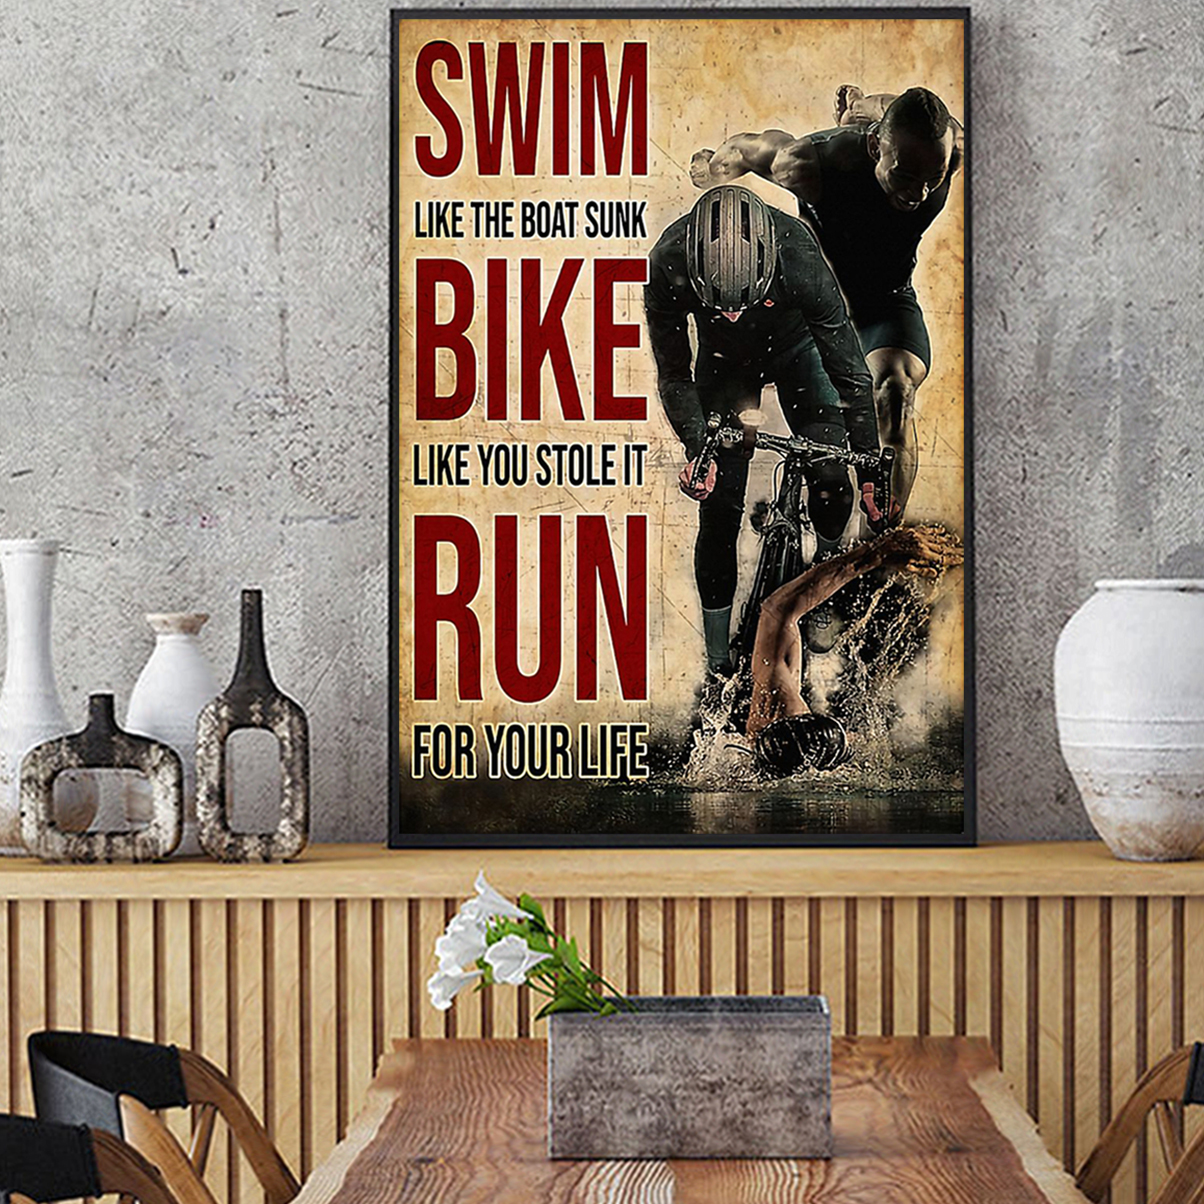 Swim like the boat sunk bike like you stole it run for your life poster A3